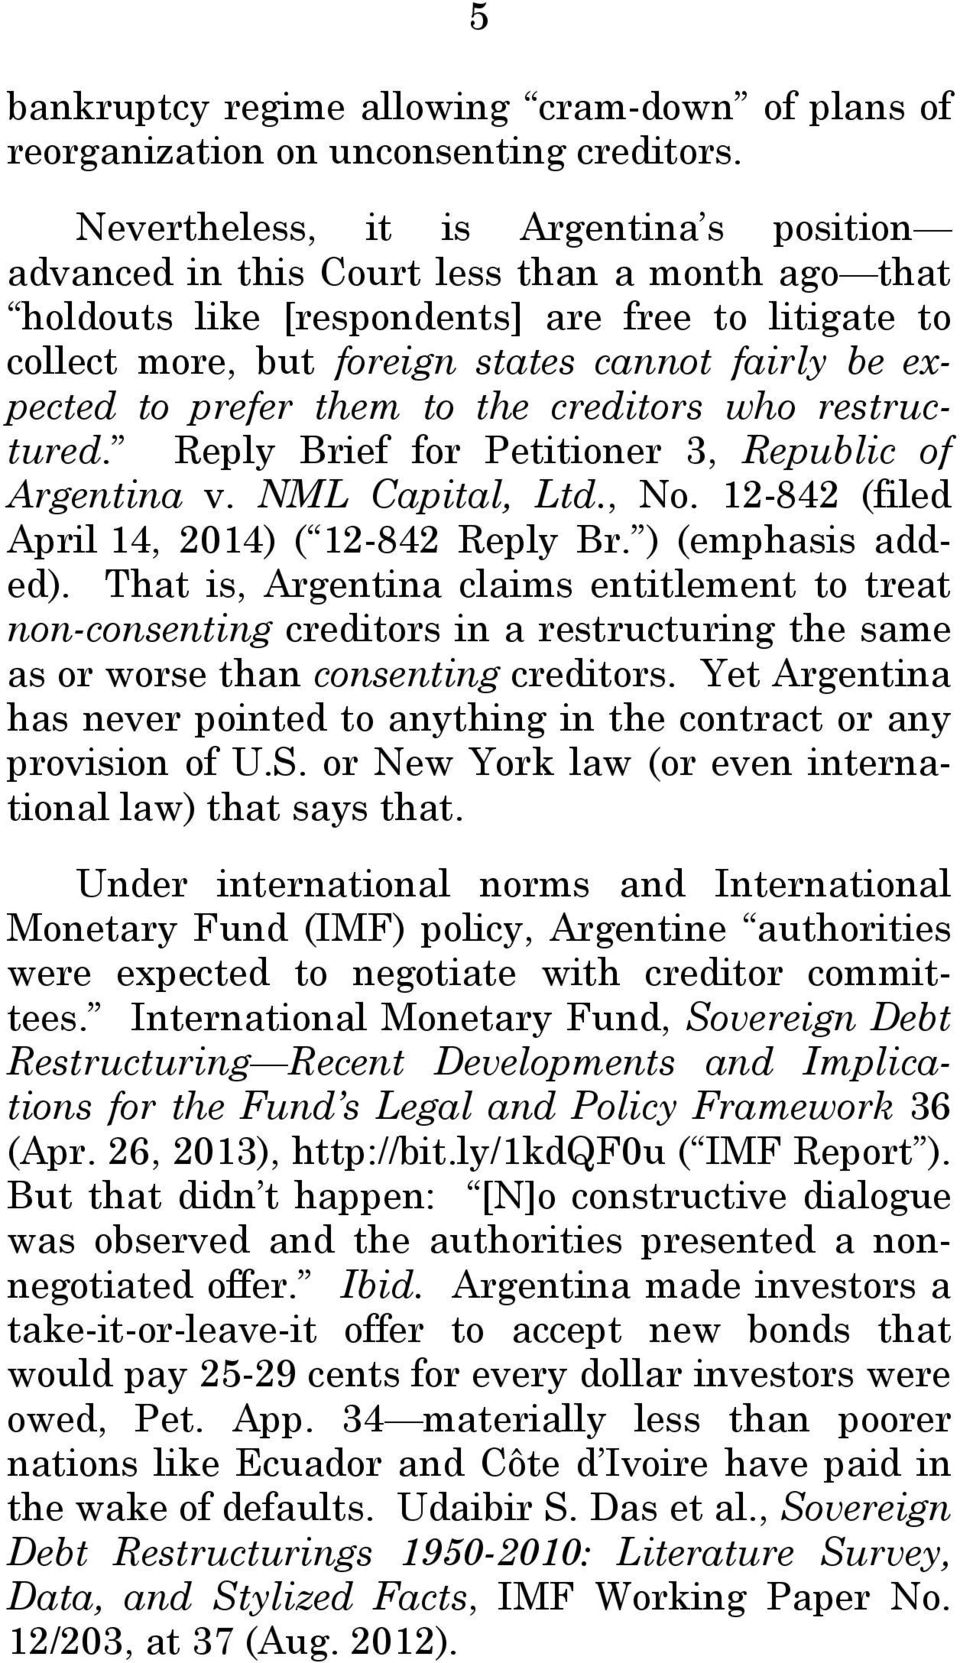 expected to prefer them to the creditors who restructured. Reply Brief for Petitioner 3, Republic of Argentina v. NML Capital, Ltd., No. 12-842 (filed April 14, 2014) ( 12-842 Reply Br.